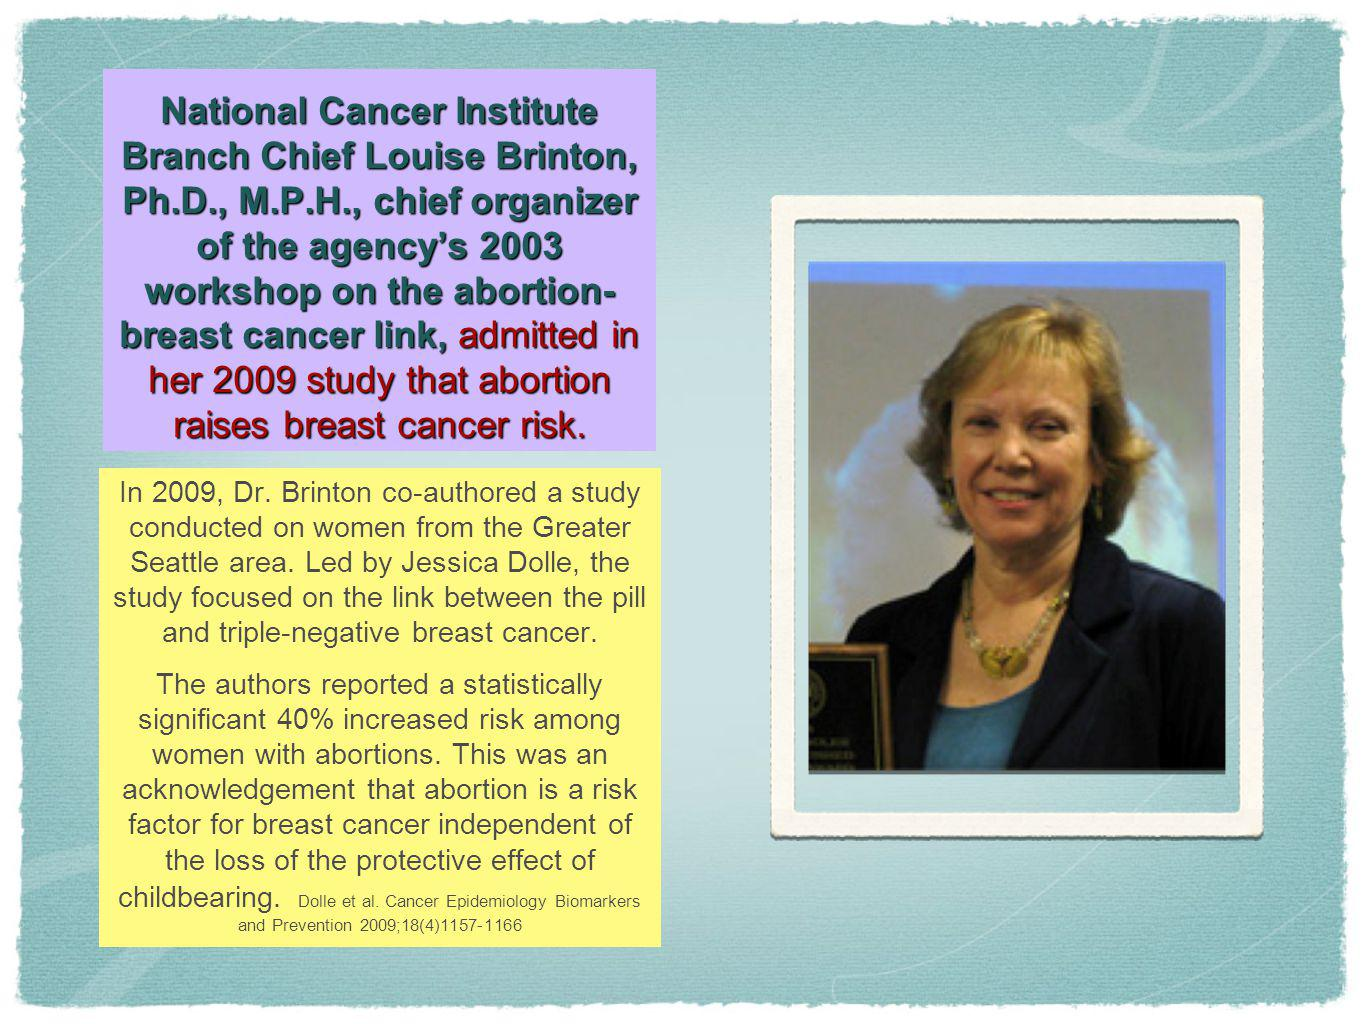 National Cancer Institute Branch Chief Louise Brinton, Ph.D., M.P.H., chief organizer of the agency's 2003 workshop on the abortion-breast cancer link, admitted in her 2009 study that abortion raises breast cancer risk.